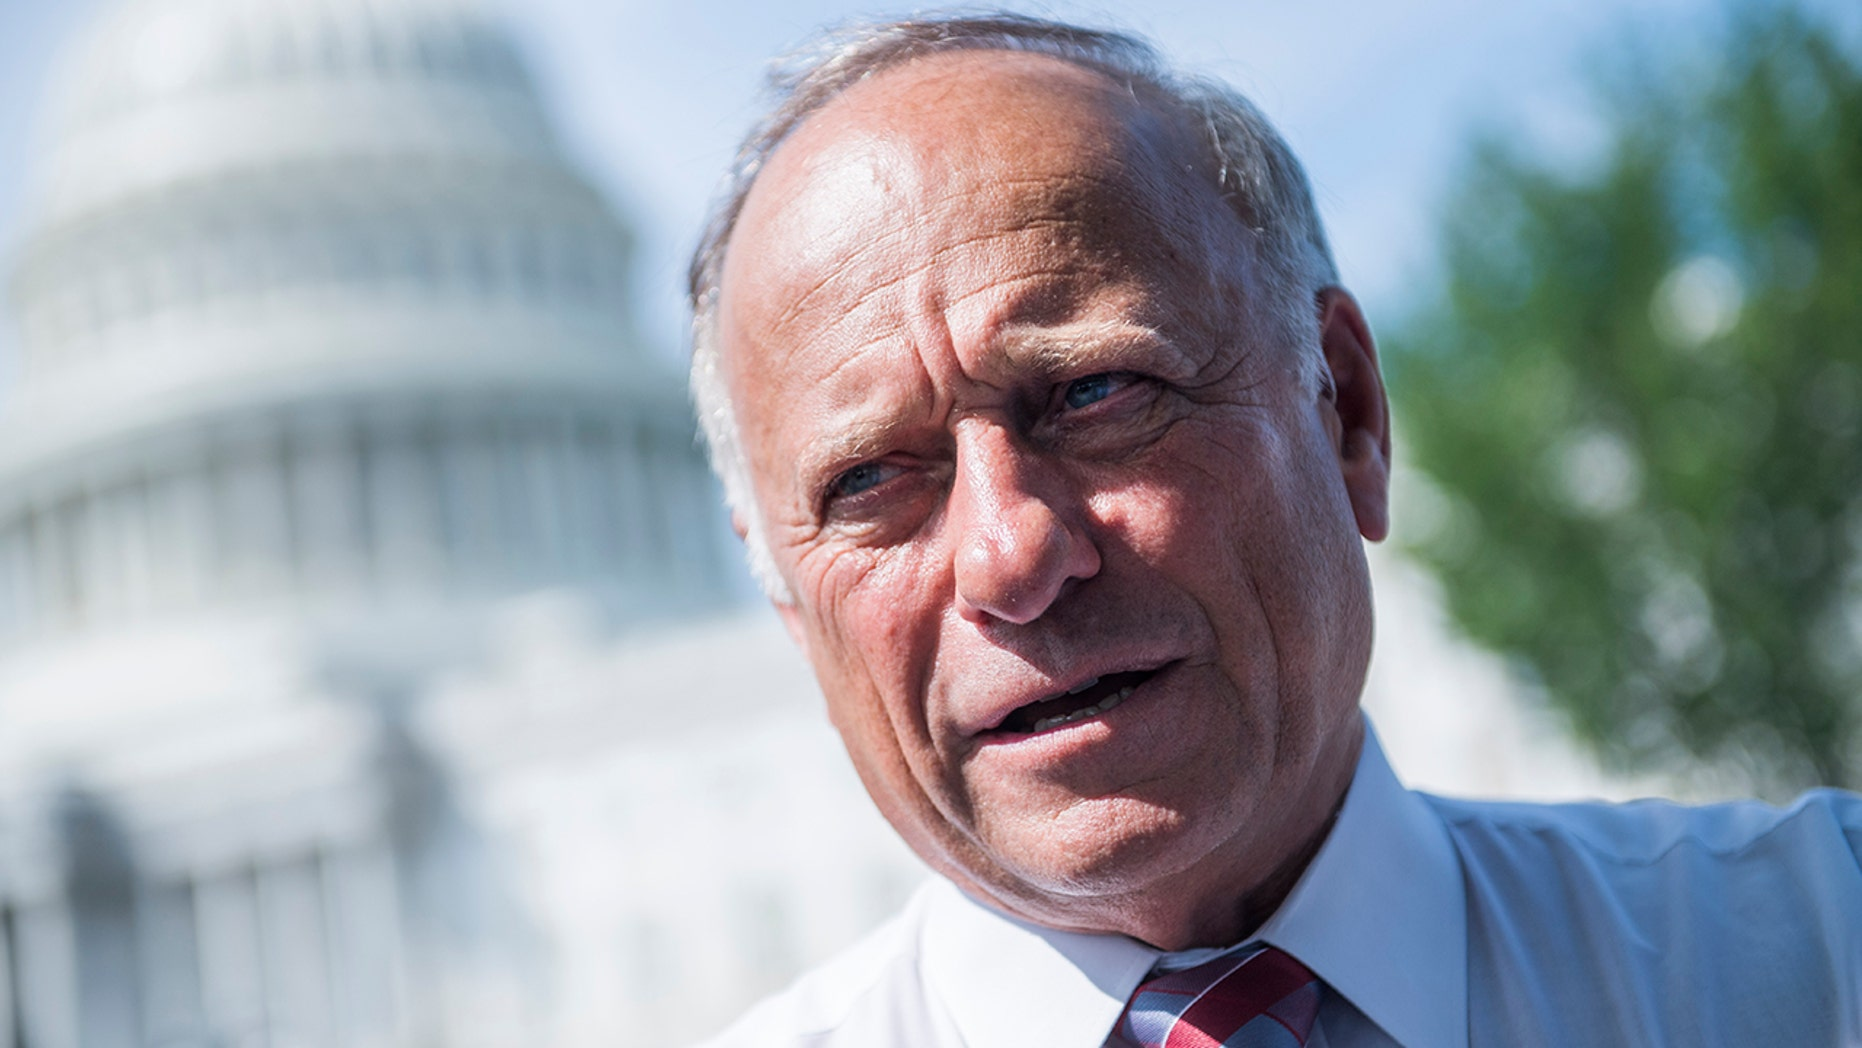 Rep. Steve King under fire for white supremacy remark